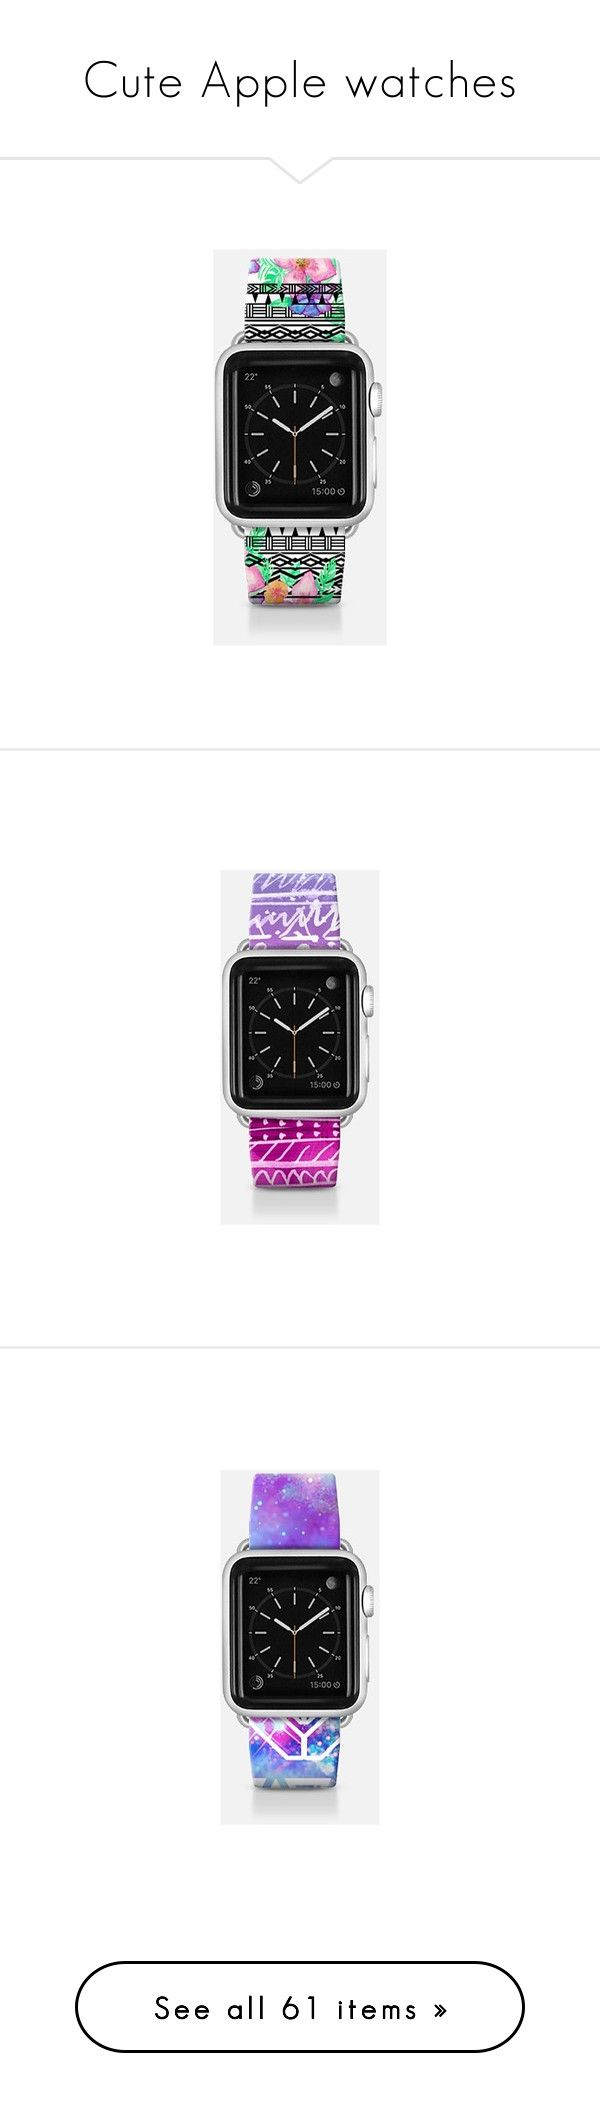 """""""Cute Apple watches"""" by sweet-brownsuga ❤ liked on Polyvore featuring jewelry, watches, apple watch band, floral watches, aztec watches, hawaiian jewelry, floral jewelry, aztec jewelry, ombre jewelry and pastel jewelry"""